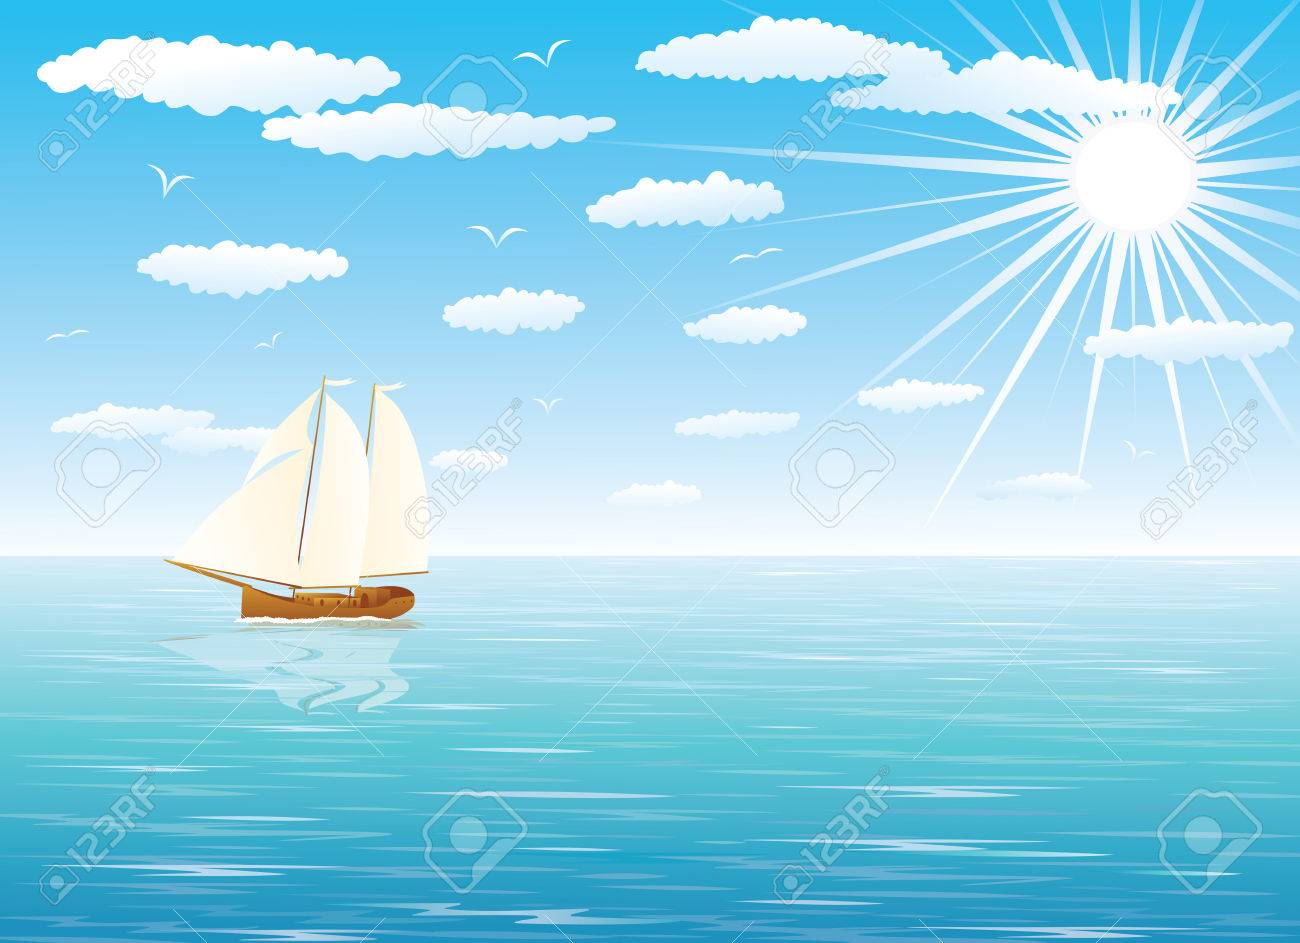 Sailing Ship at Sea under full sail with a cloudy blue sky in the background. Stock Vector - 6128834